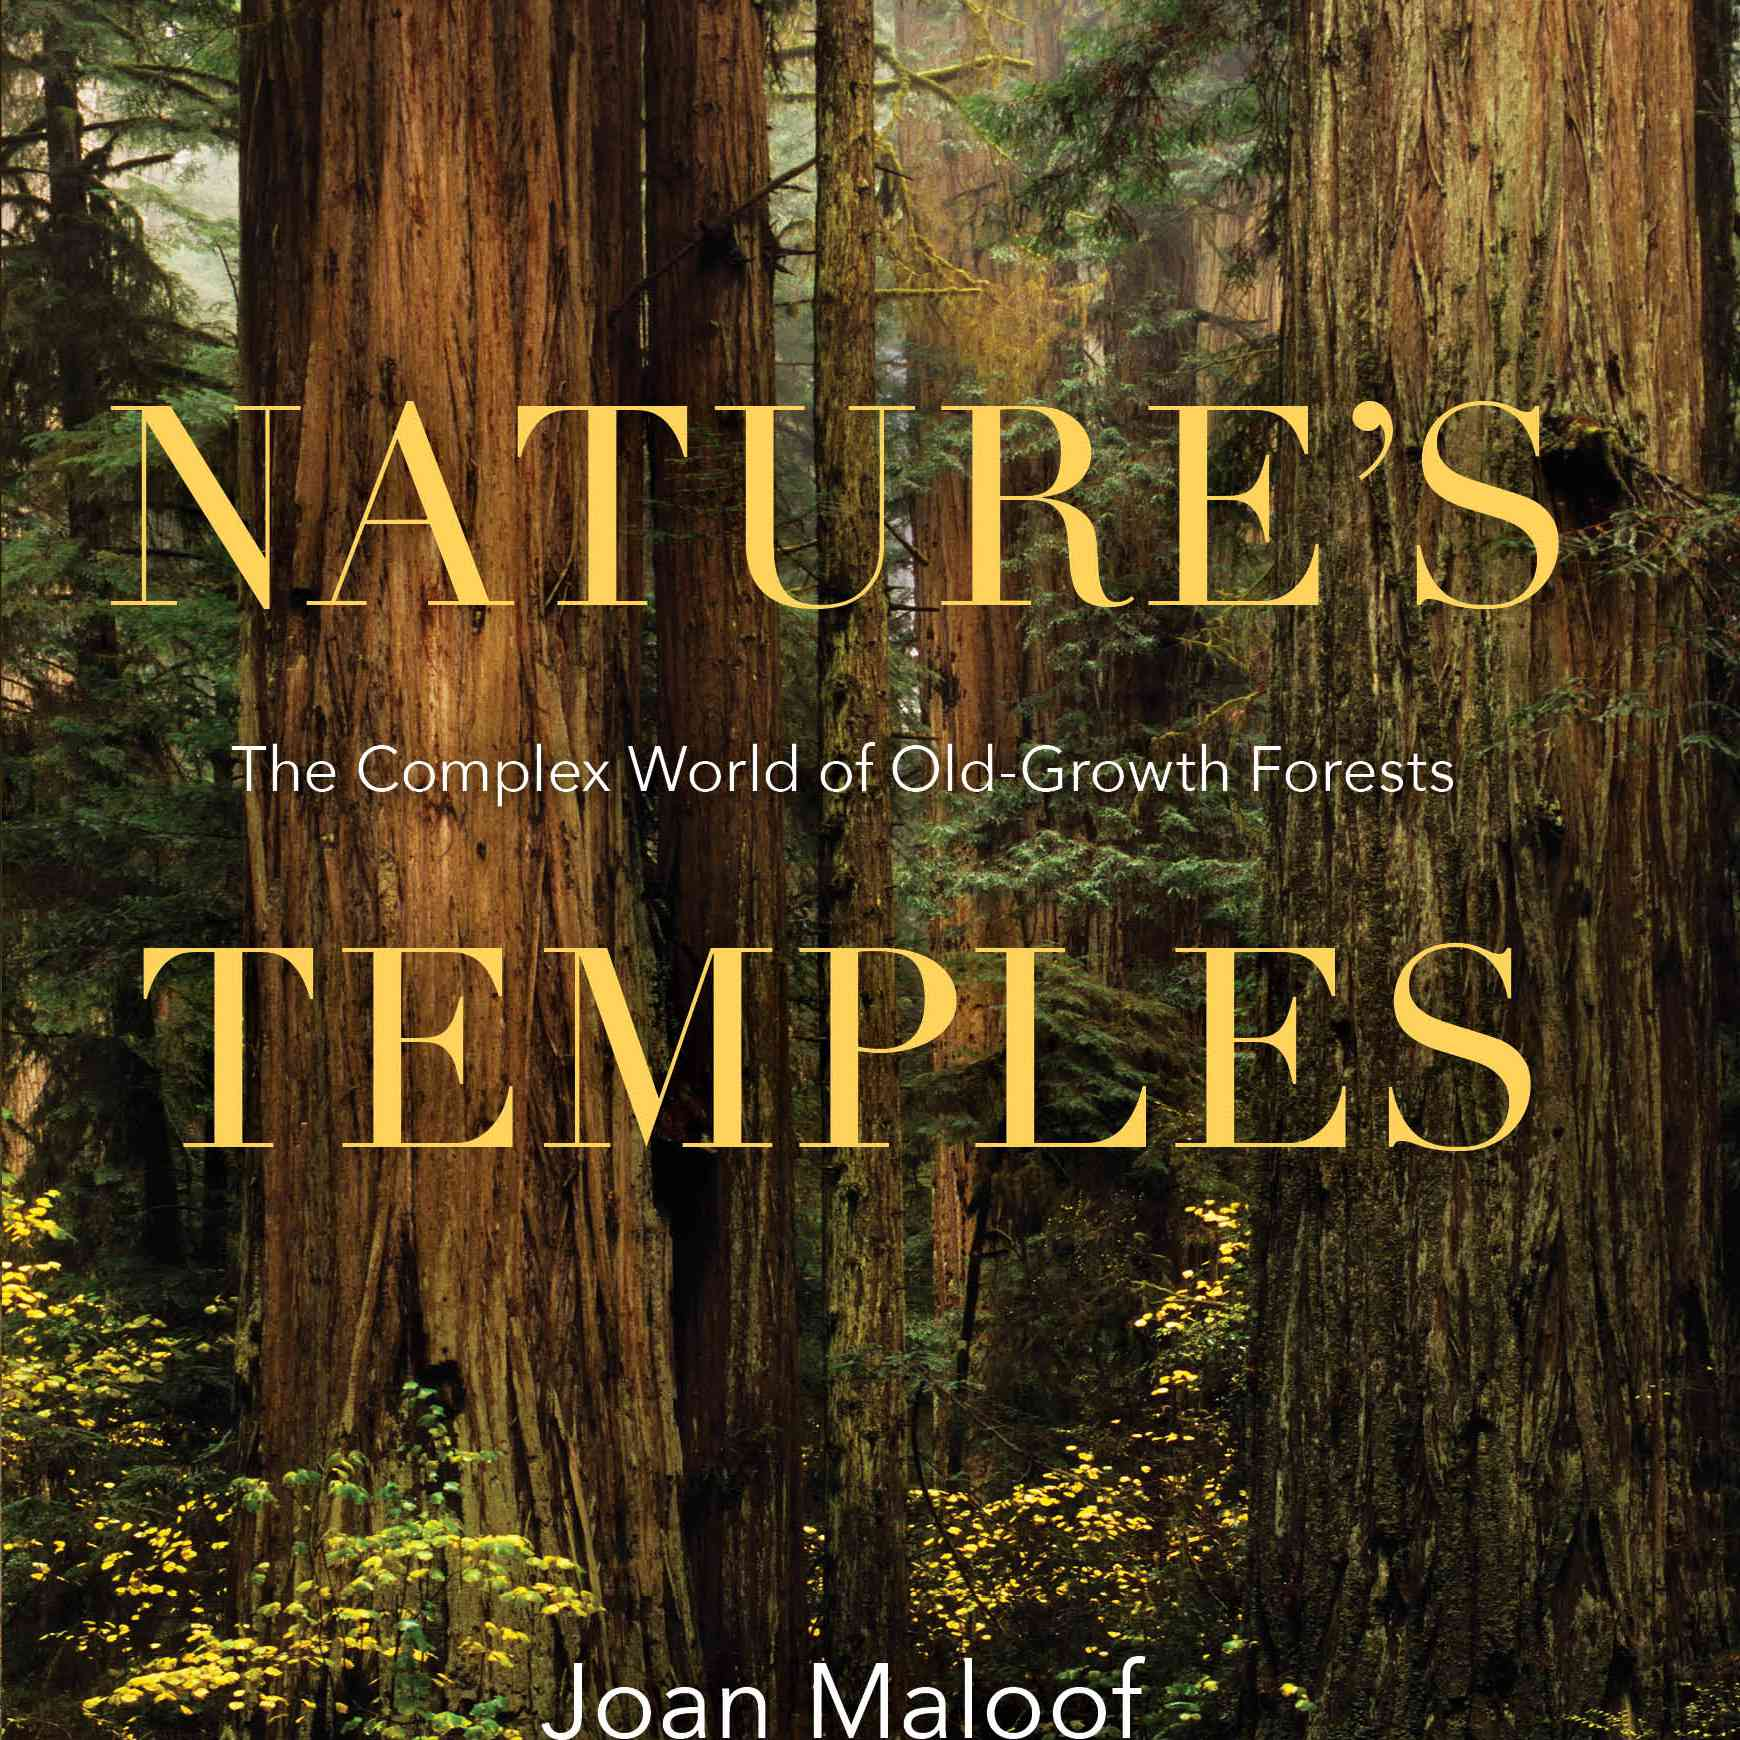 'Nature's Temples' by Joan Maloof book cover